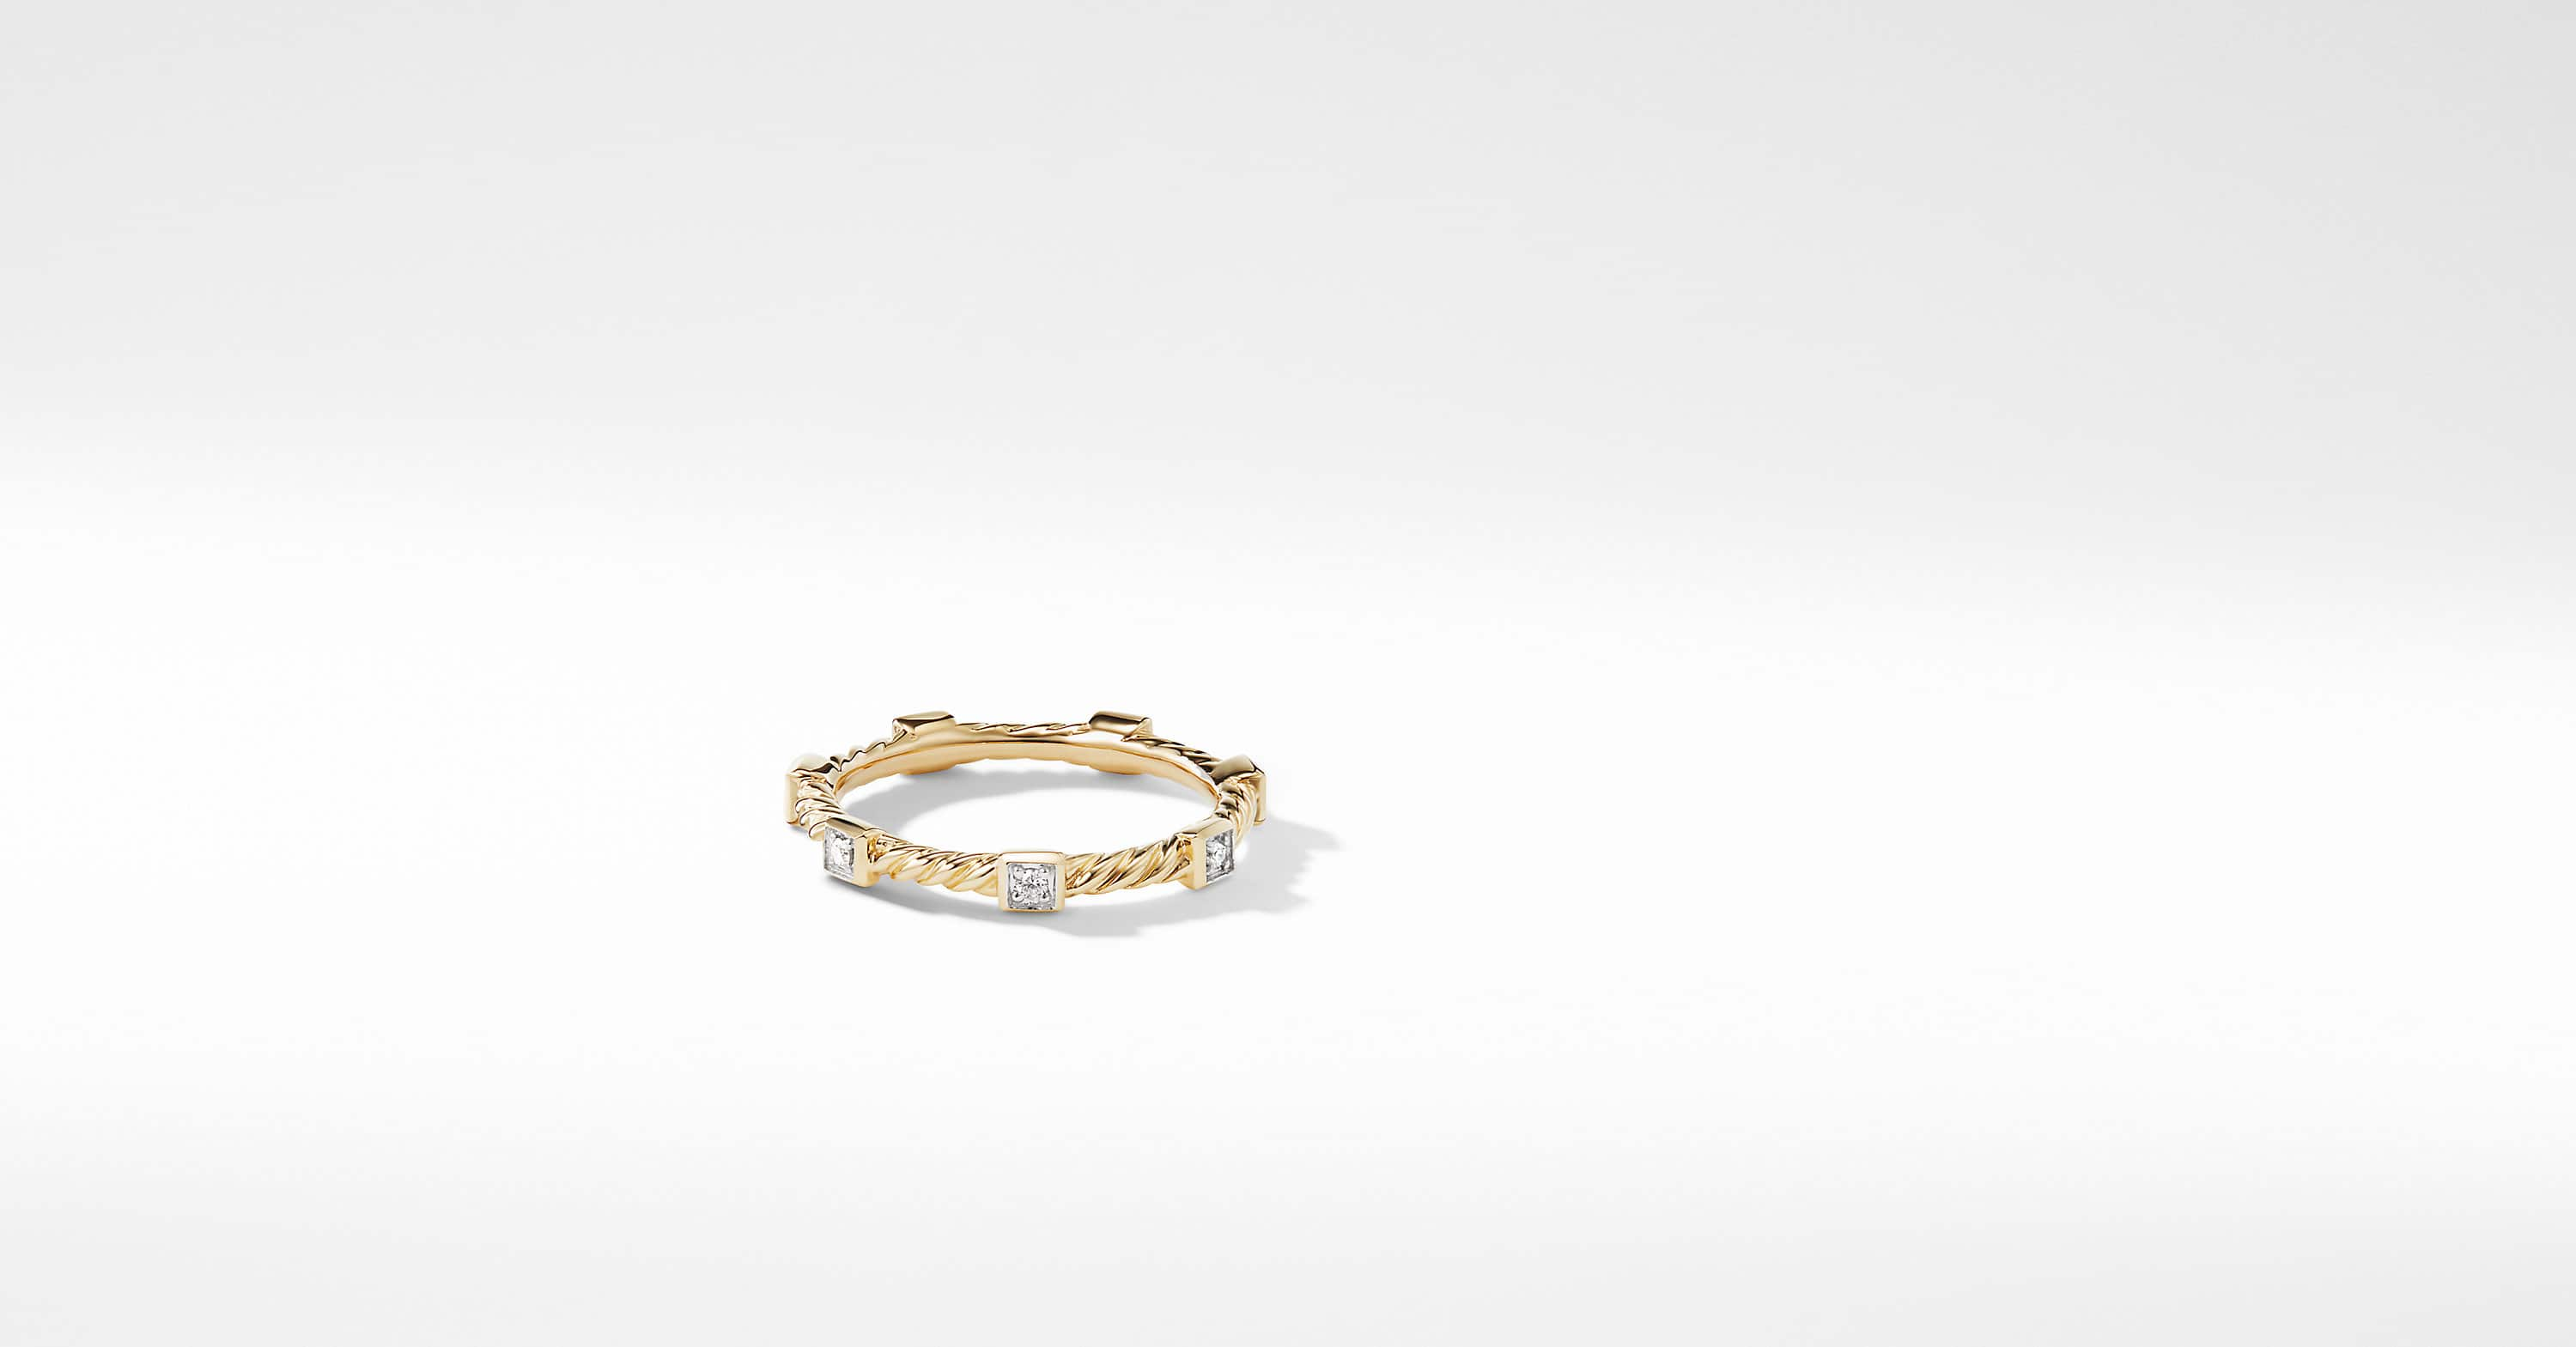 Bague Cable Collectibles en or 18K avec diamants